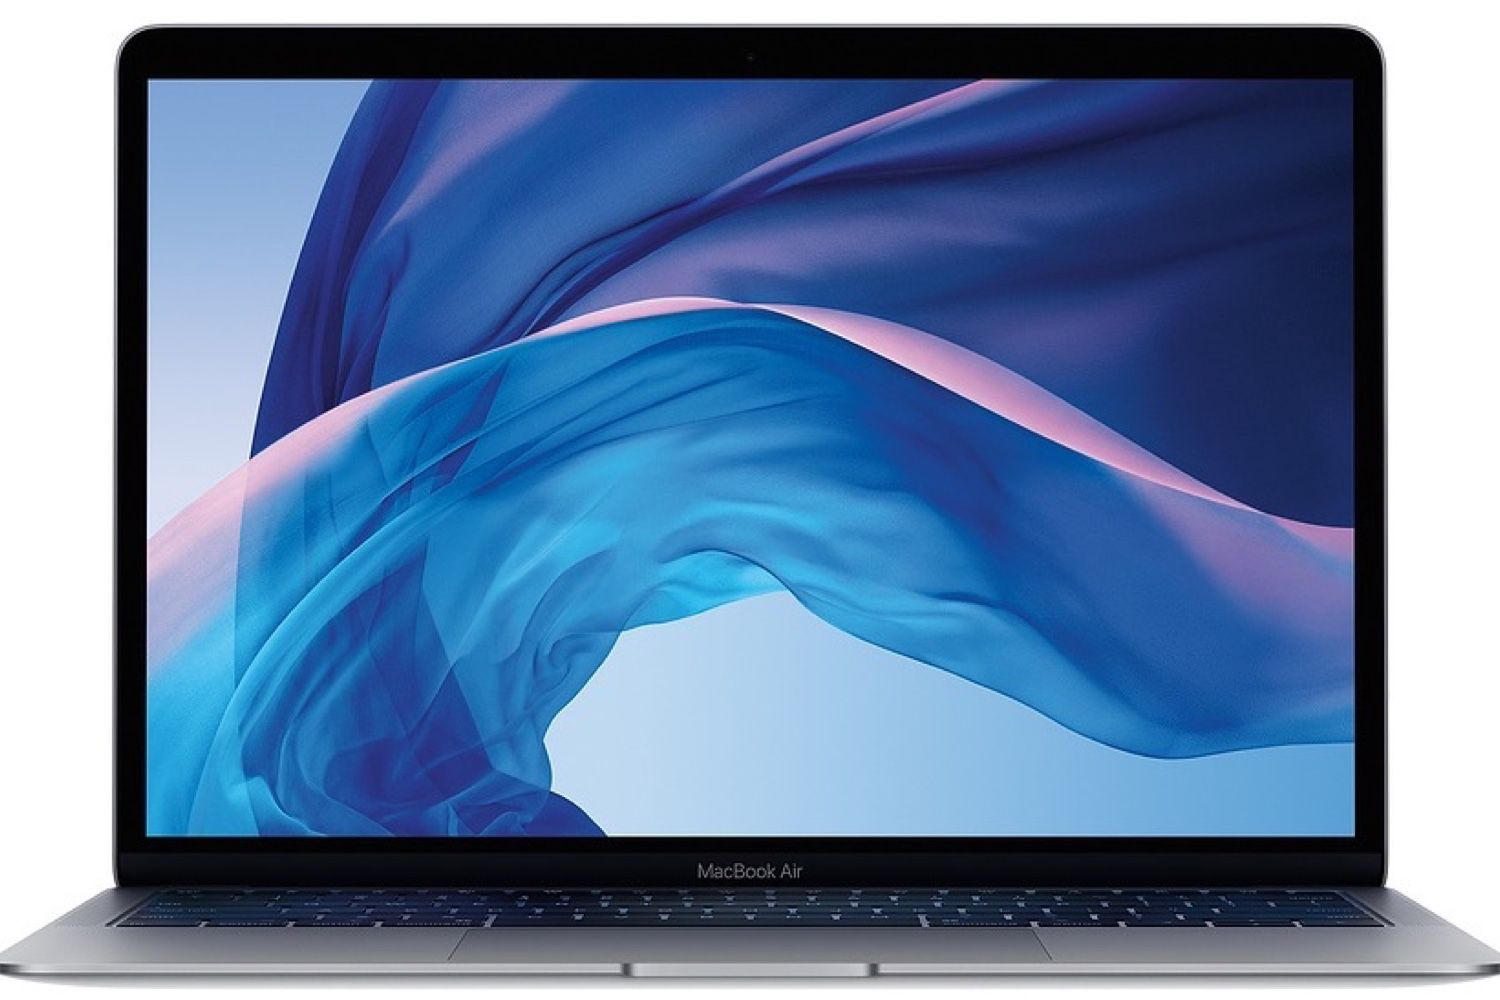 Refurb : MacBook Air à 919 €, iPad 6 à 299 €, iPad Air à 479 €